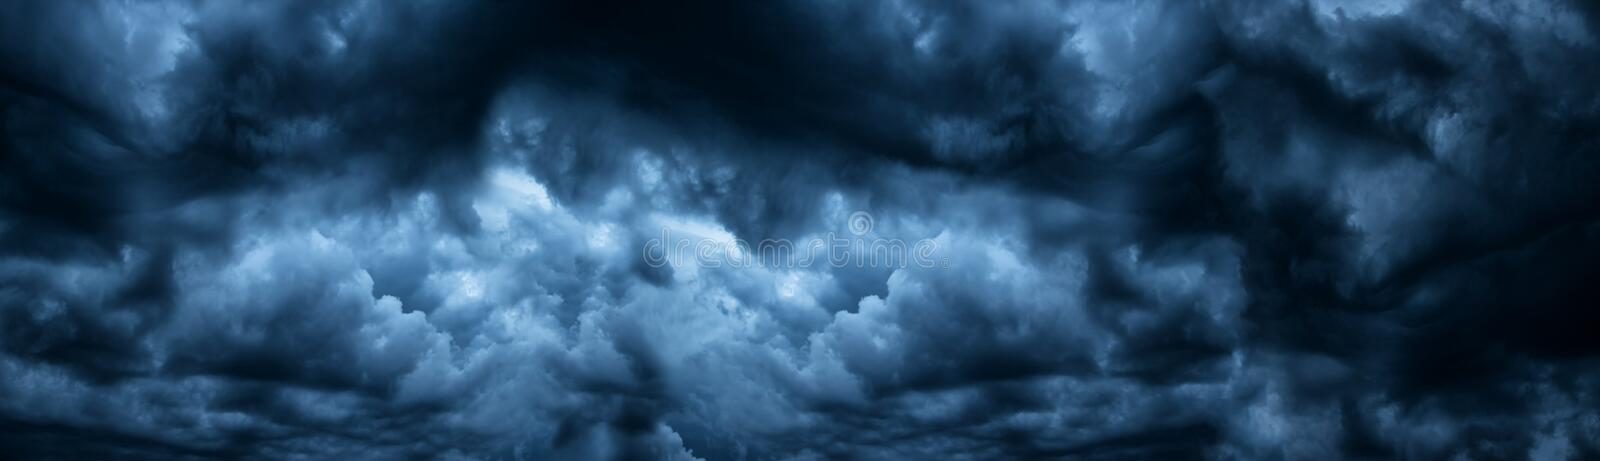 Dark cloudy sky before thunderstorm panoramic background. Storm heaven panorama. Large gloomy backdrop. Dark cloudy sky before thunderstorm panoramic background royalty free stock photo